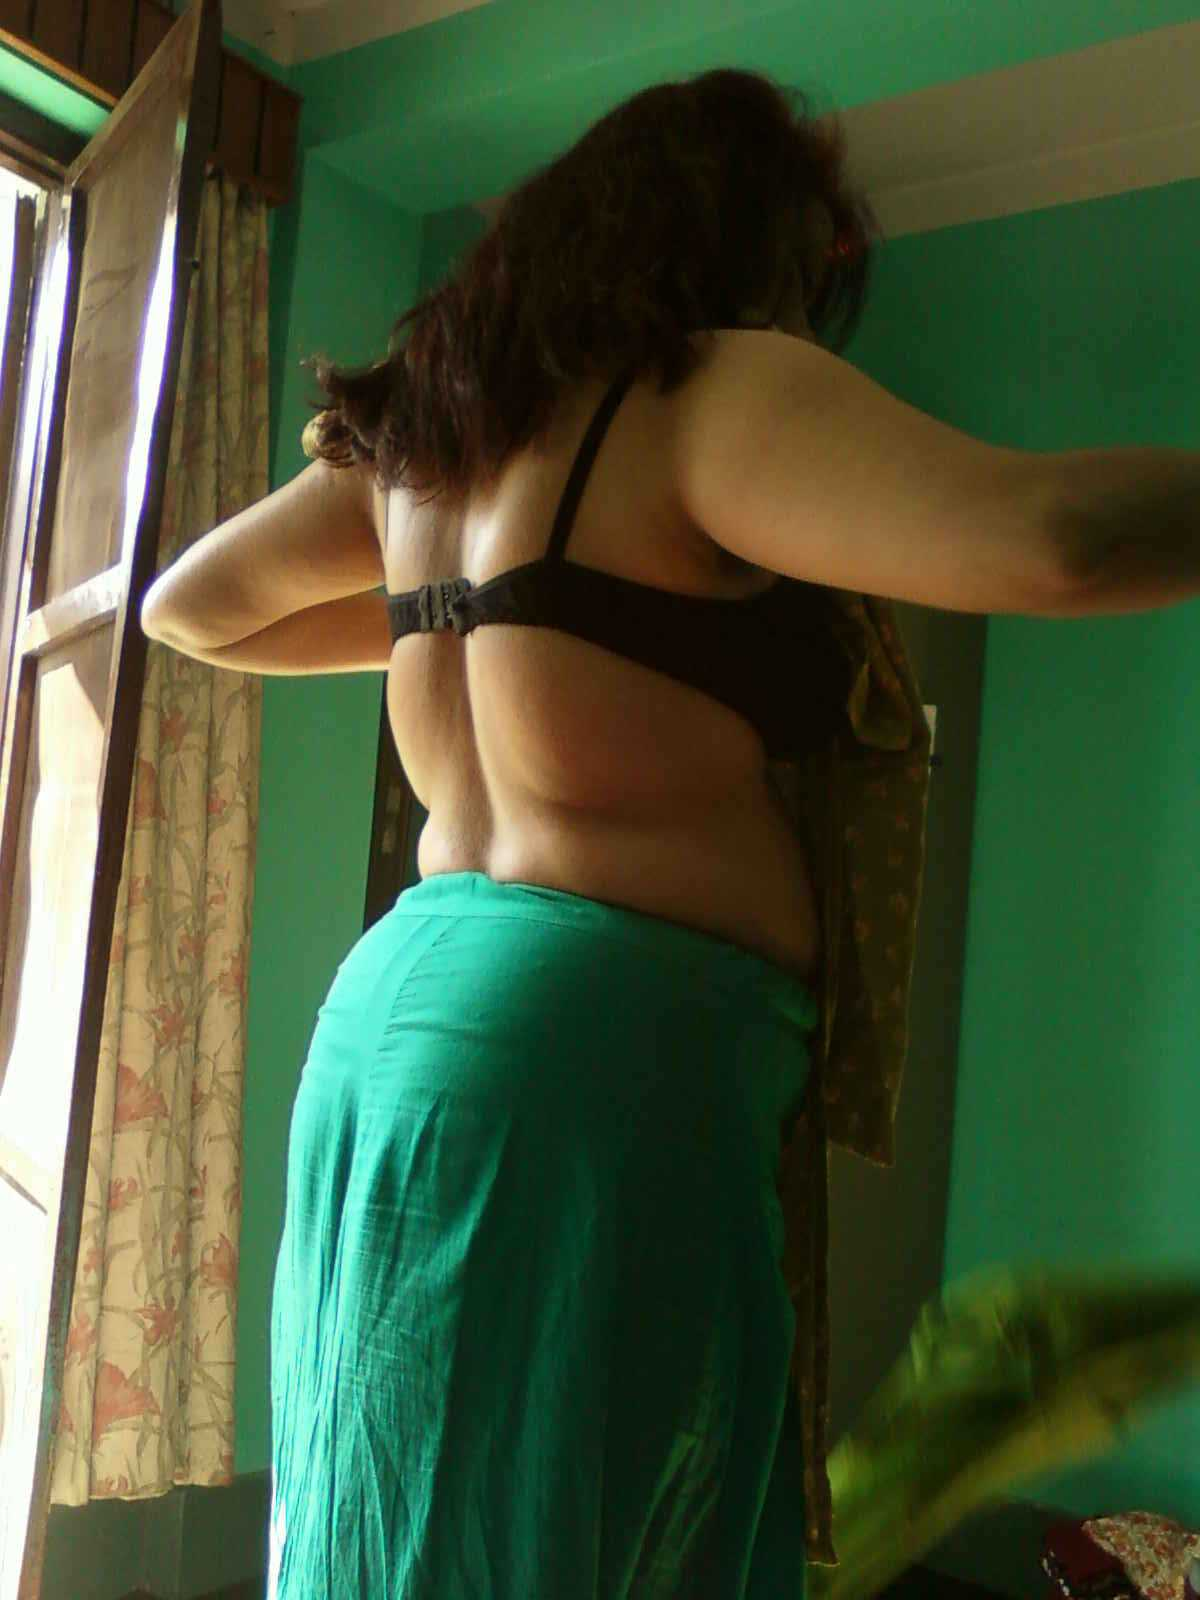 Share Bhabhi ass in saree remarkable